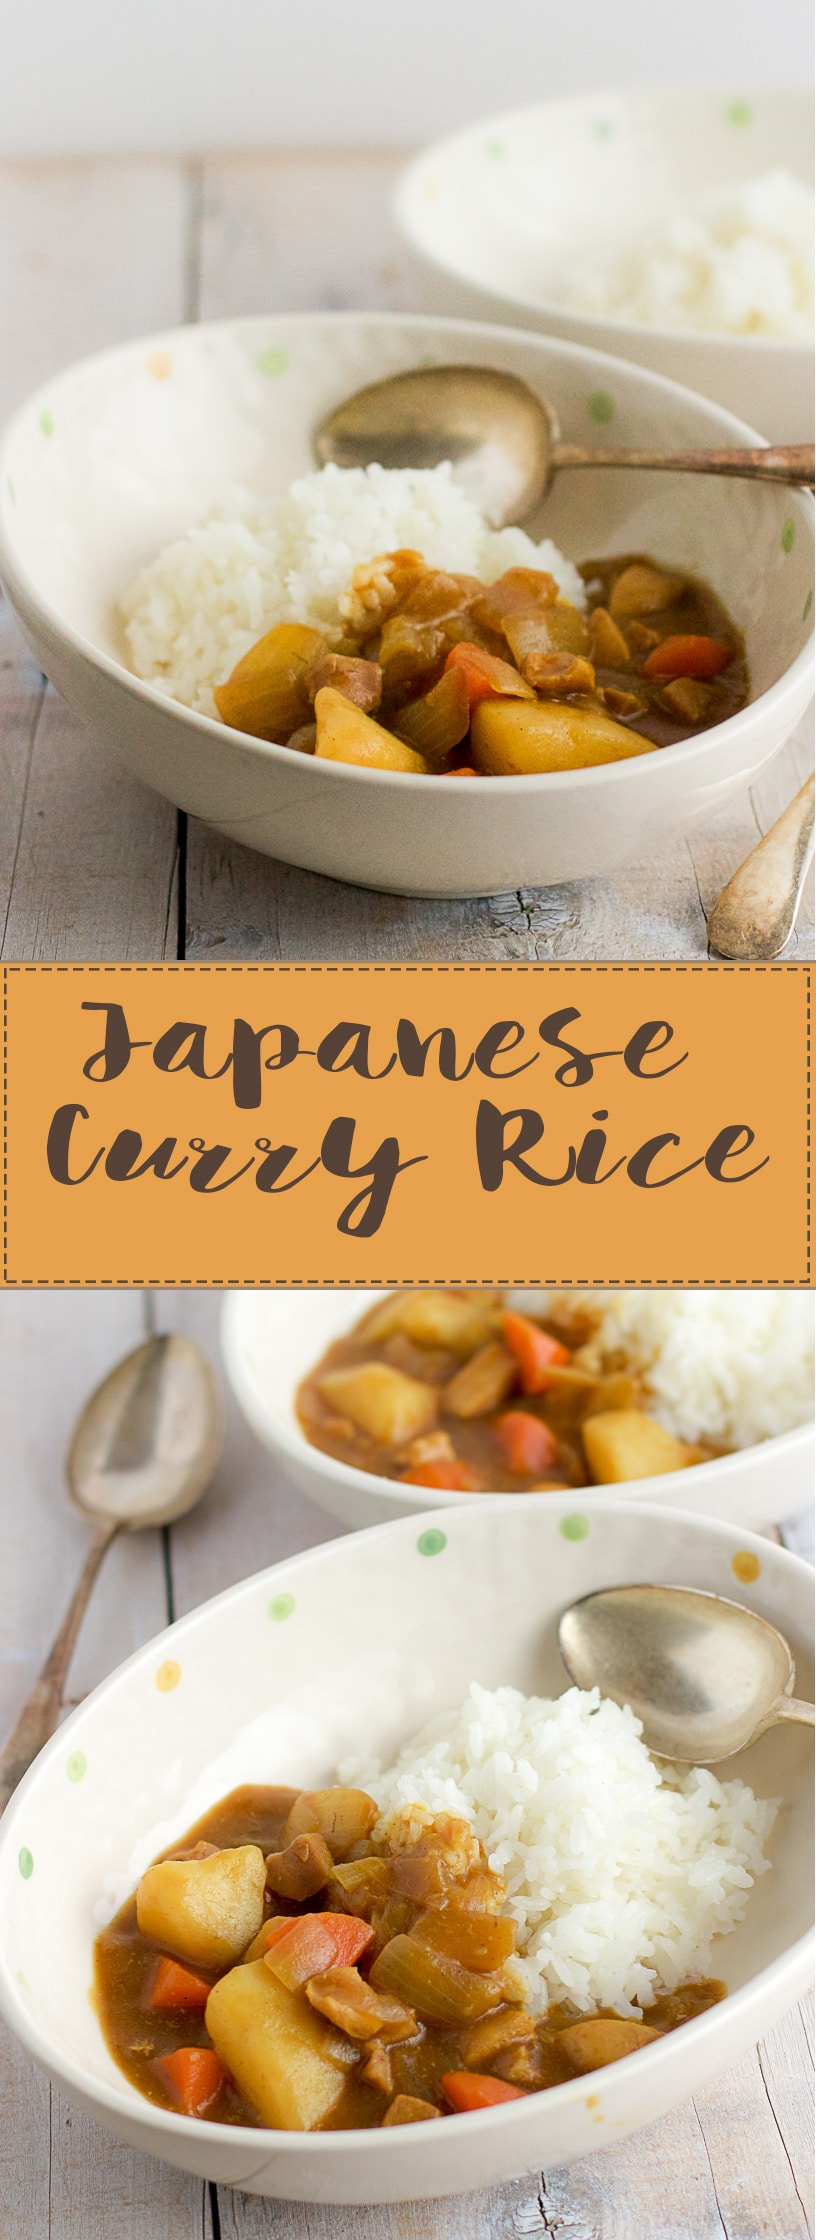 Japanese-curry-rice-pinterest-collage-2